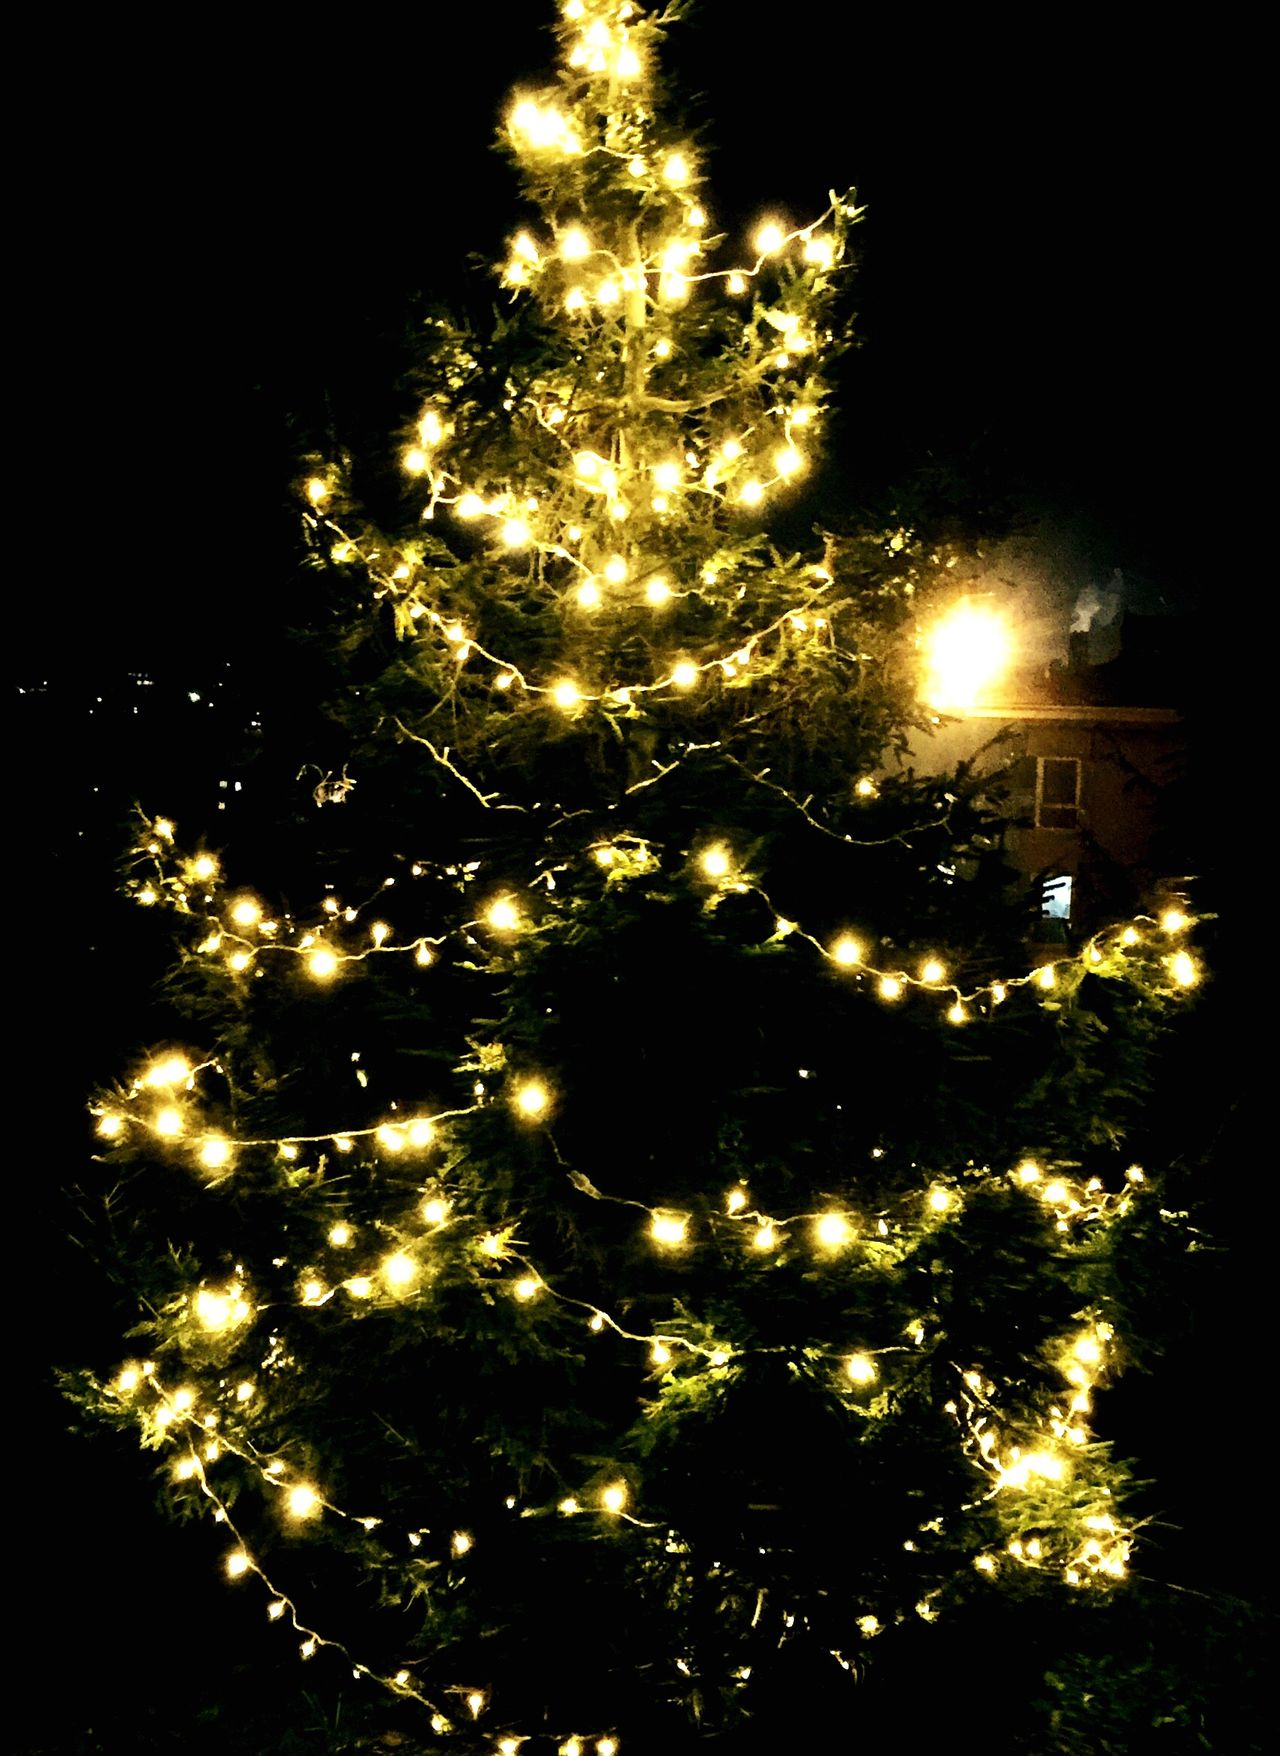 Christmas Tree Christmas Lights Christmastree Christmas Around The World MerryChristmas Merry Christmas Merryxmas IPhoneography Mobilephotography Mobile Photography